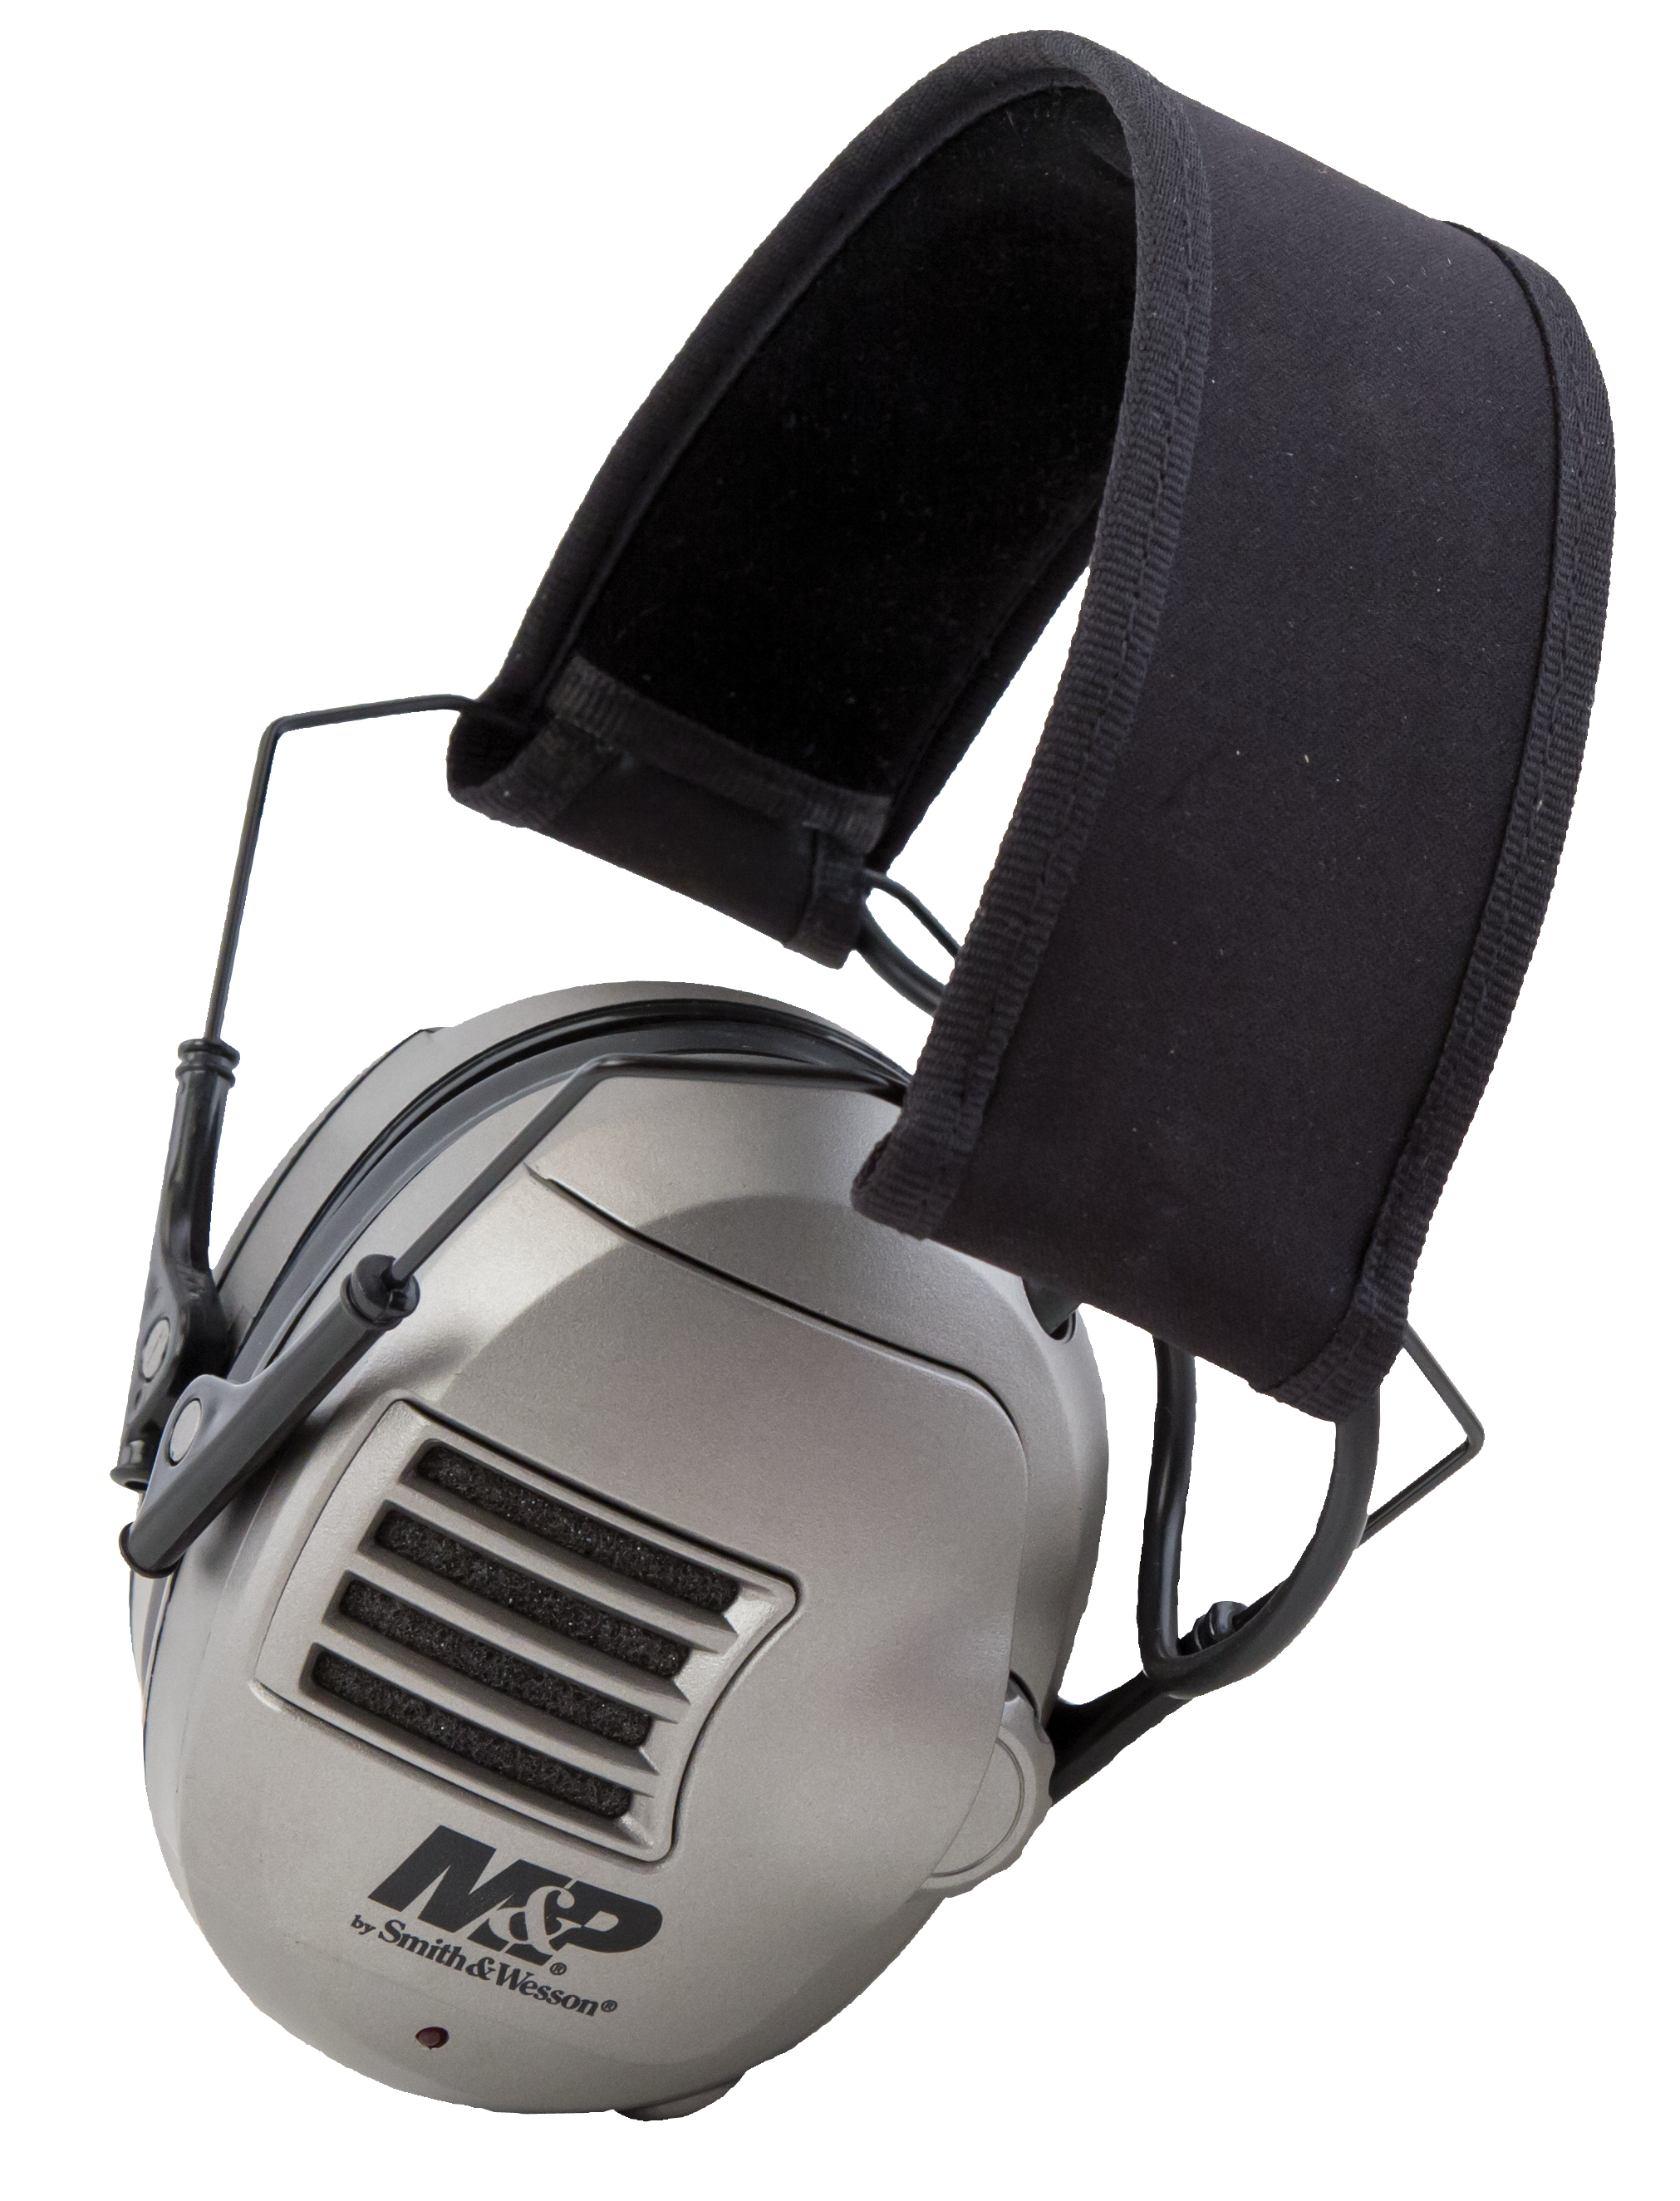 Smith & Wesson M&P Alpha Electronic Earmuffs NRR 23 dB - Black/Gray